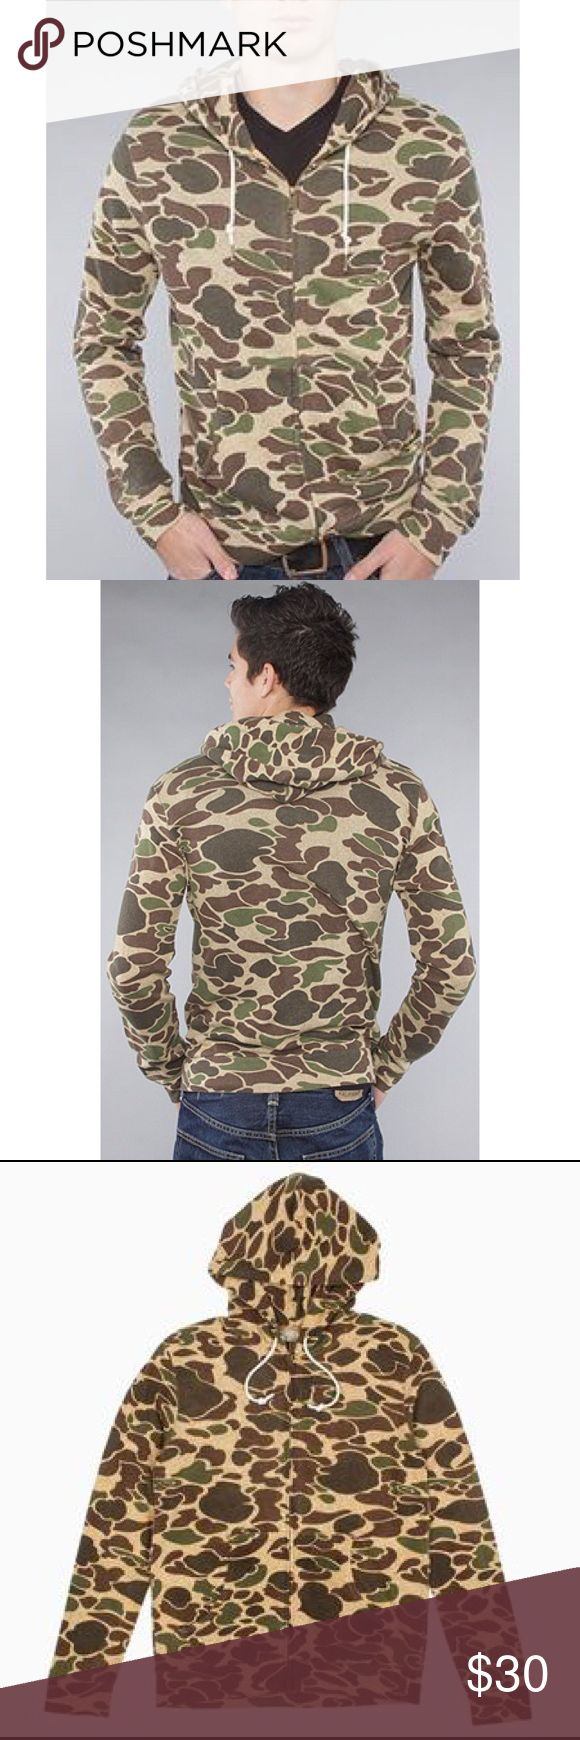 Obey men's creature comforts hoodie fall leaf camo Brand new with tags. Obey Shirts Sweatshirts & Hoodies